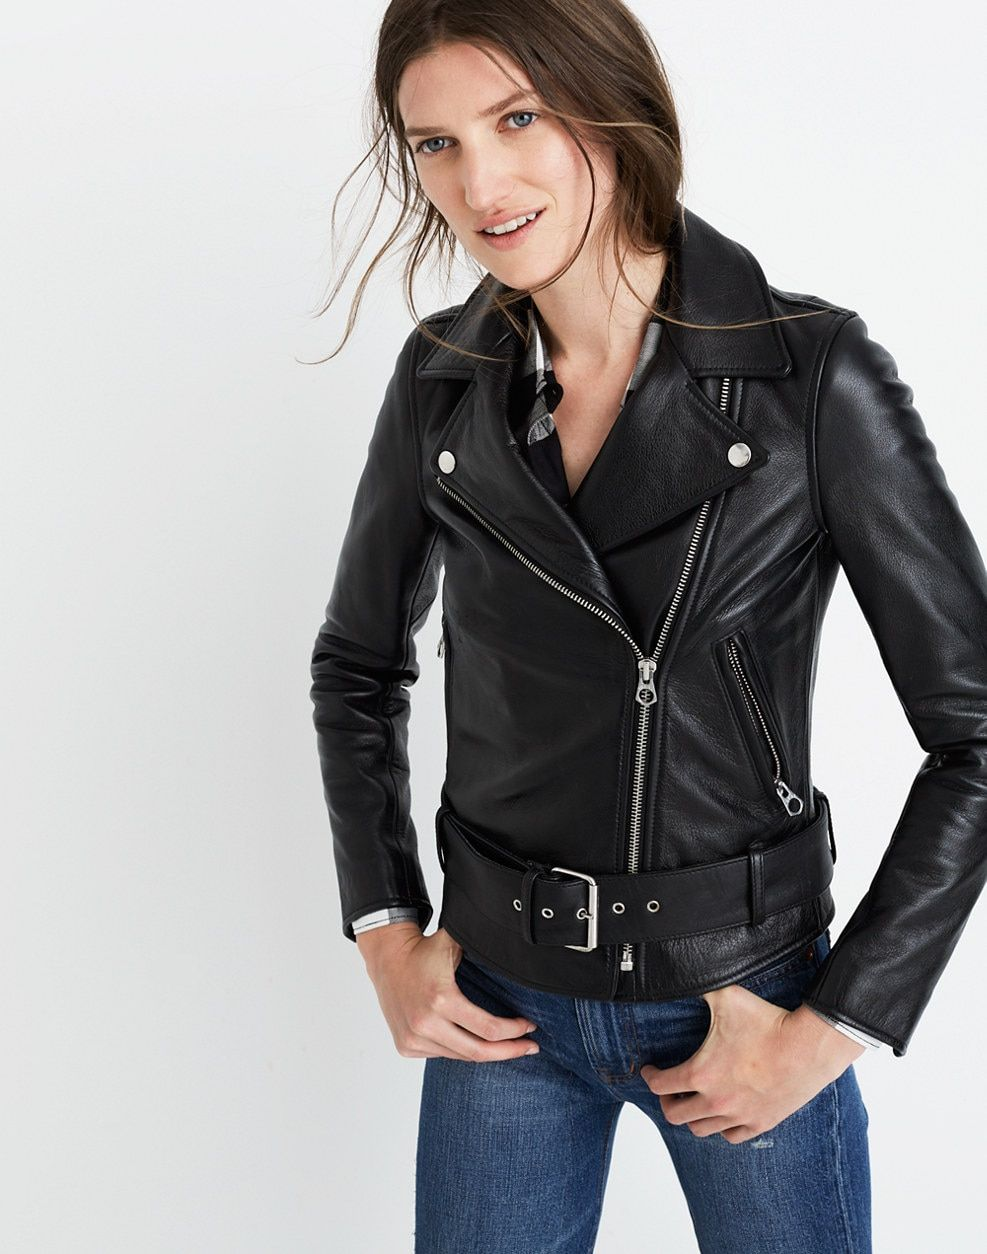 f41cca48b Ultimate Leather Motorcycle Jacket : leather jackets | Madewell ...